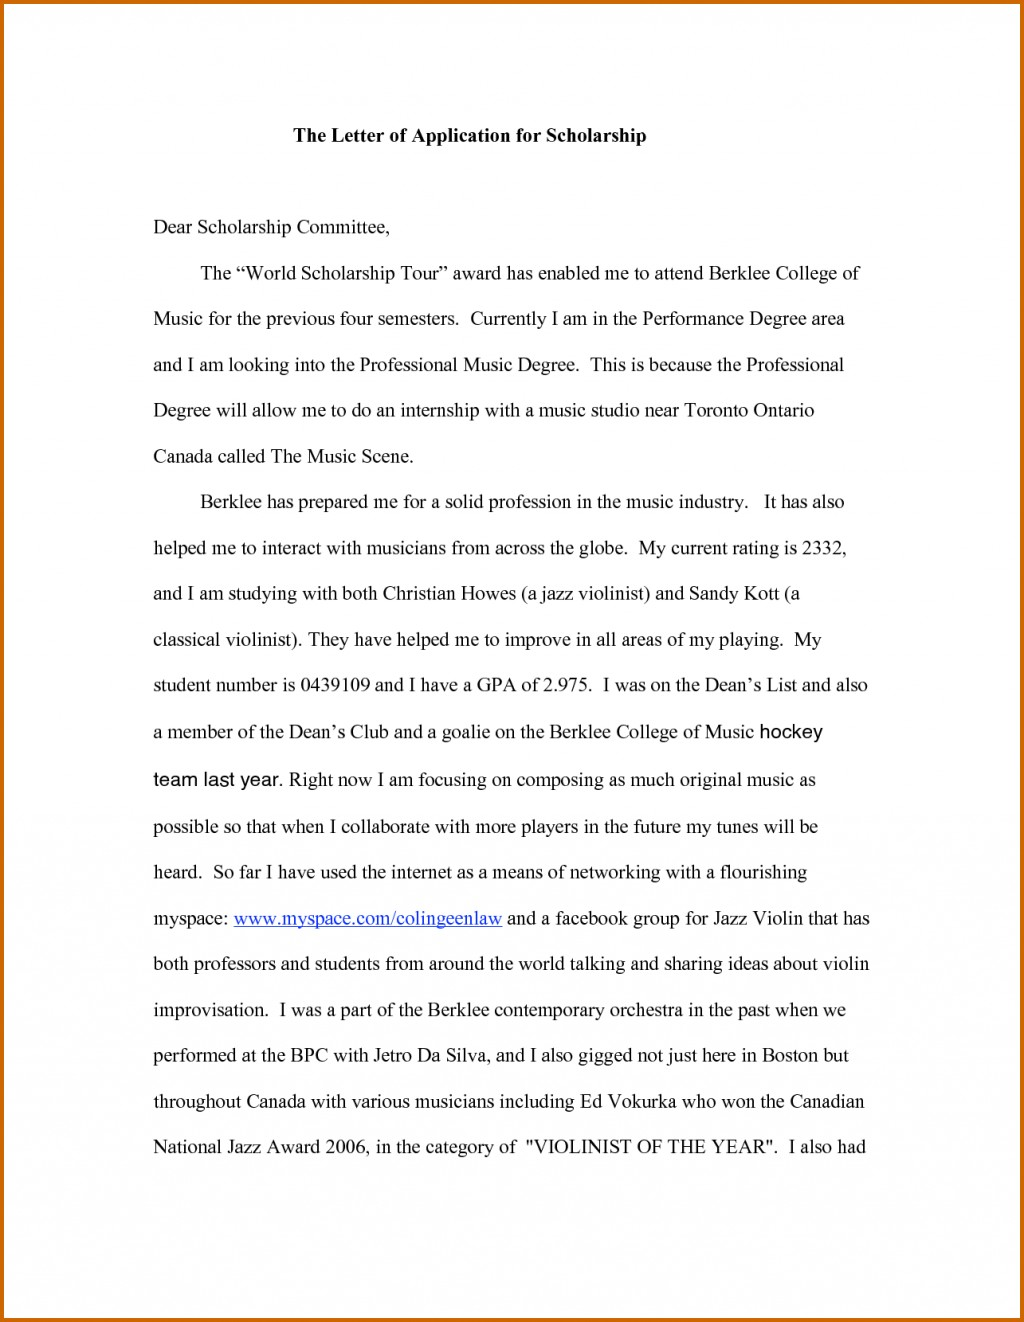 007 How To Start Scholarship Essay Write Me On Brexits Who Am I Introduction Striking A About Why You Deserve It Examples Large